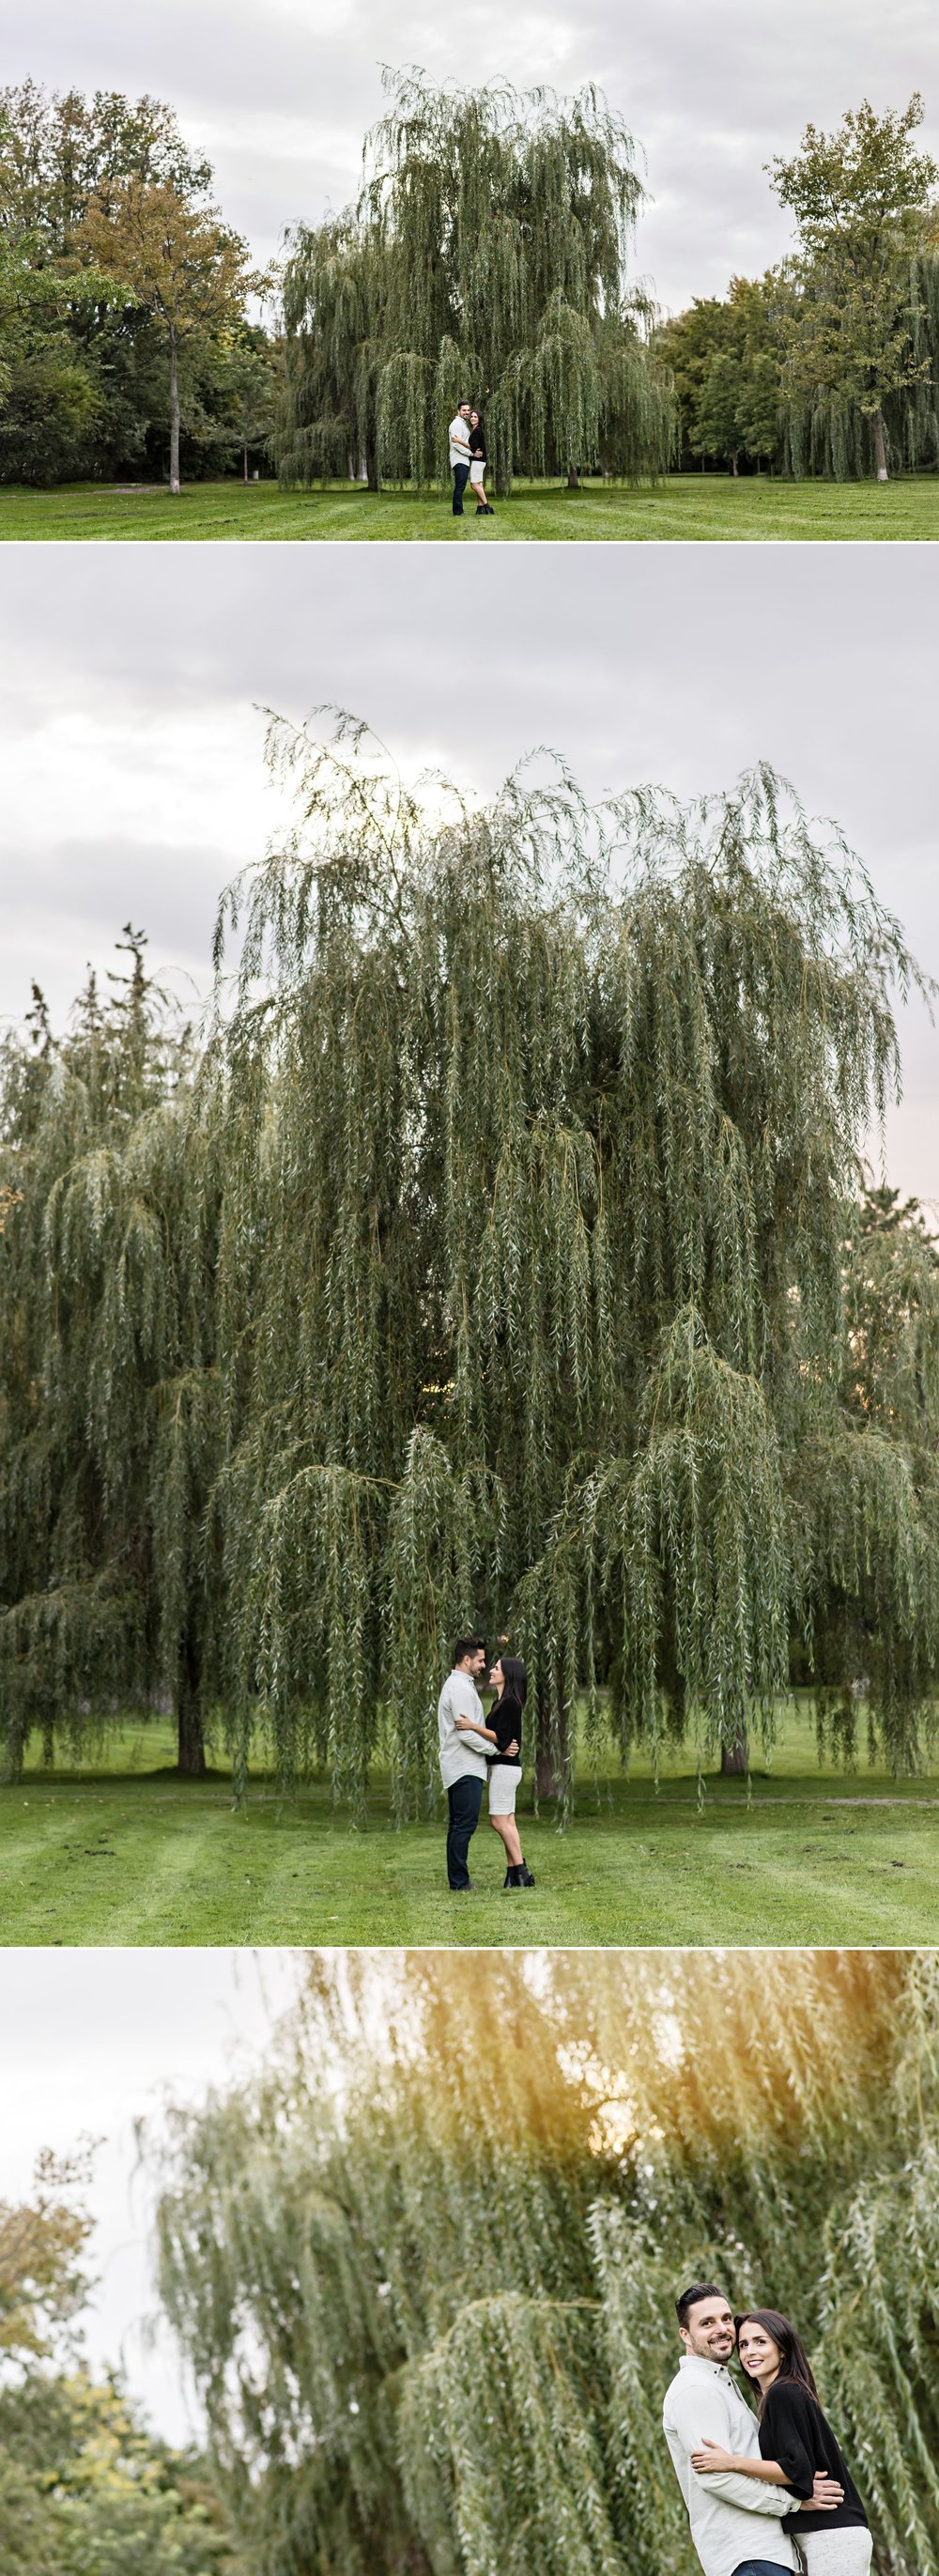 Portraits for a couple's engagement under the willow trees in a centretown park in Ottawa